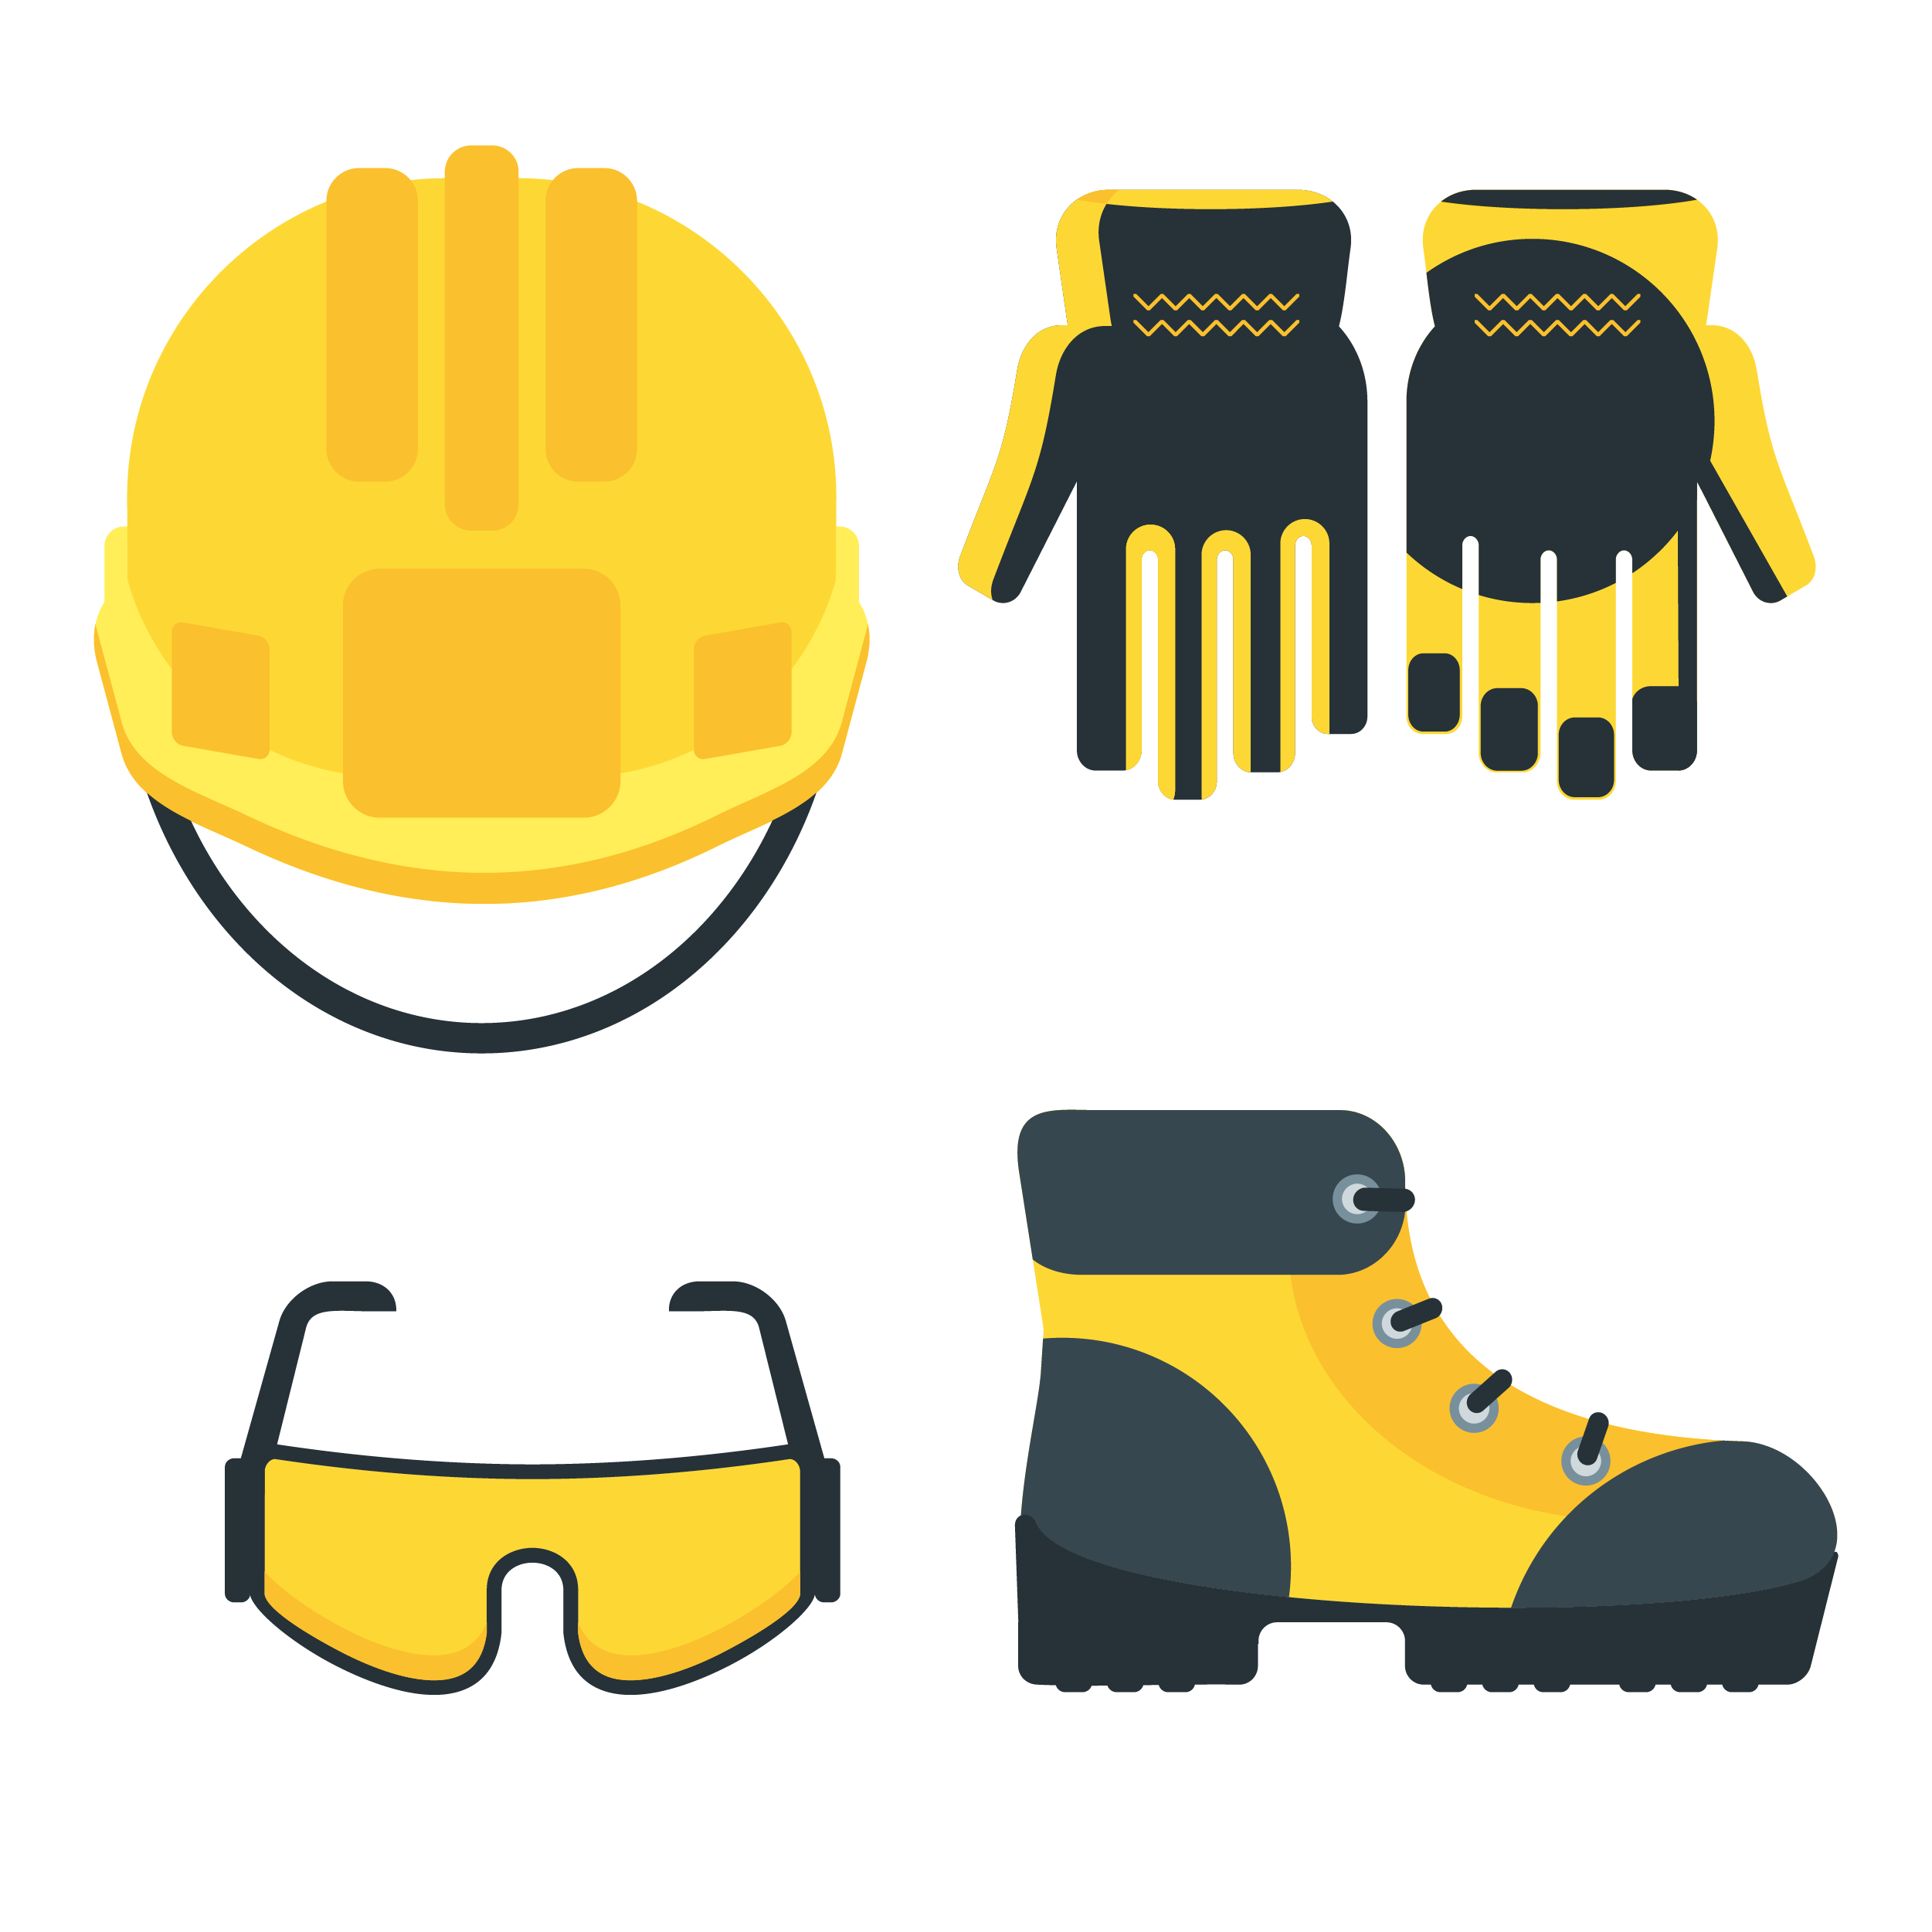 Illustration of a hard hat, gloves, safety glasses and safety shoes